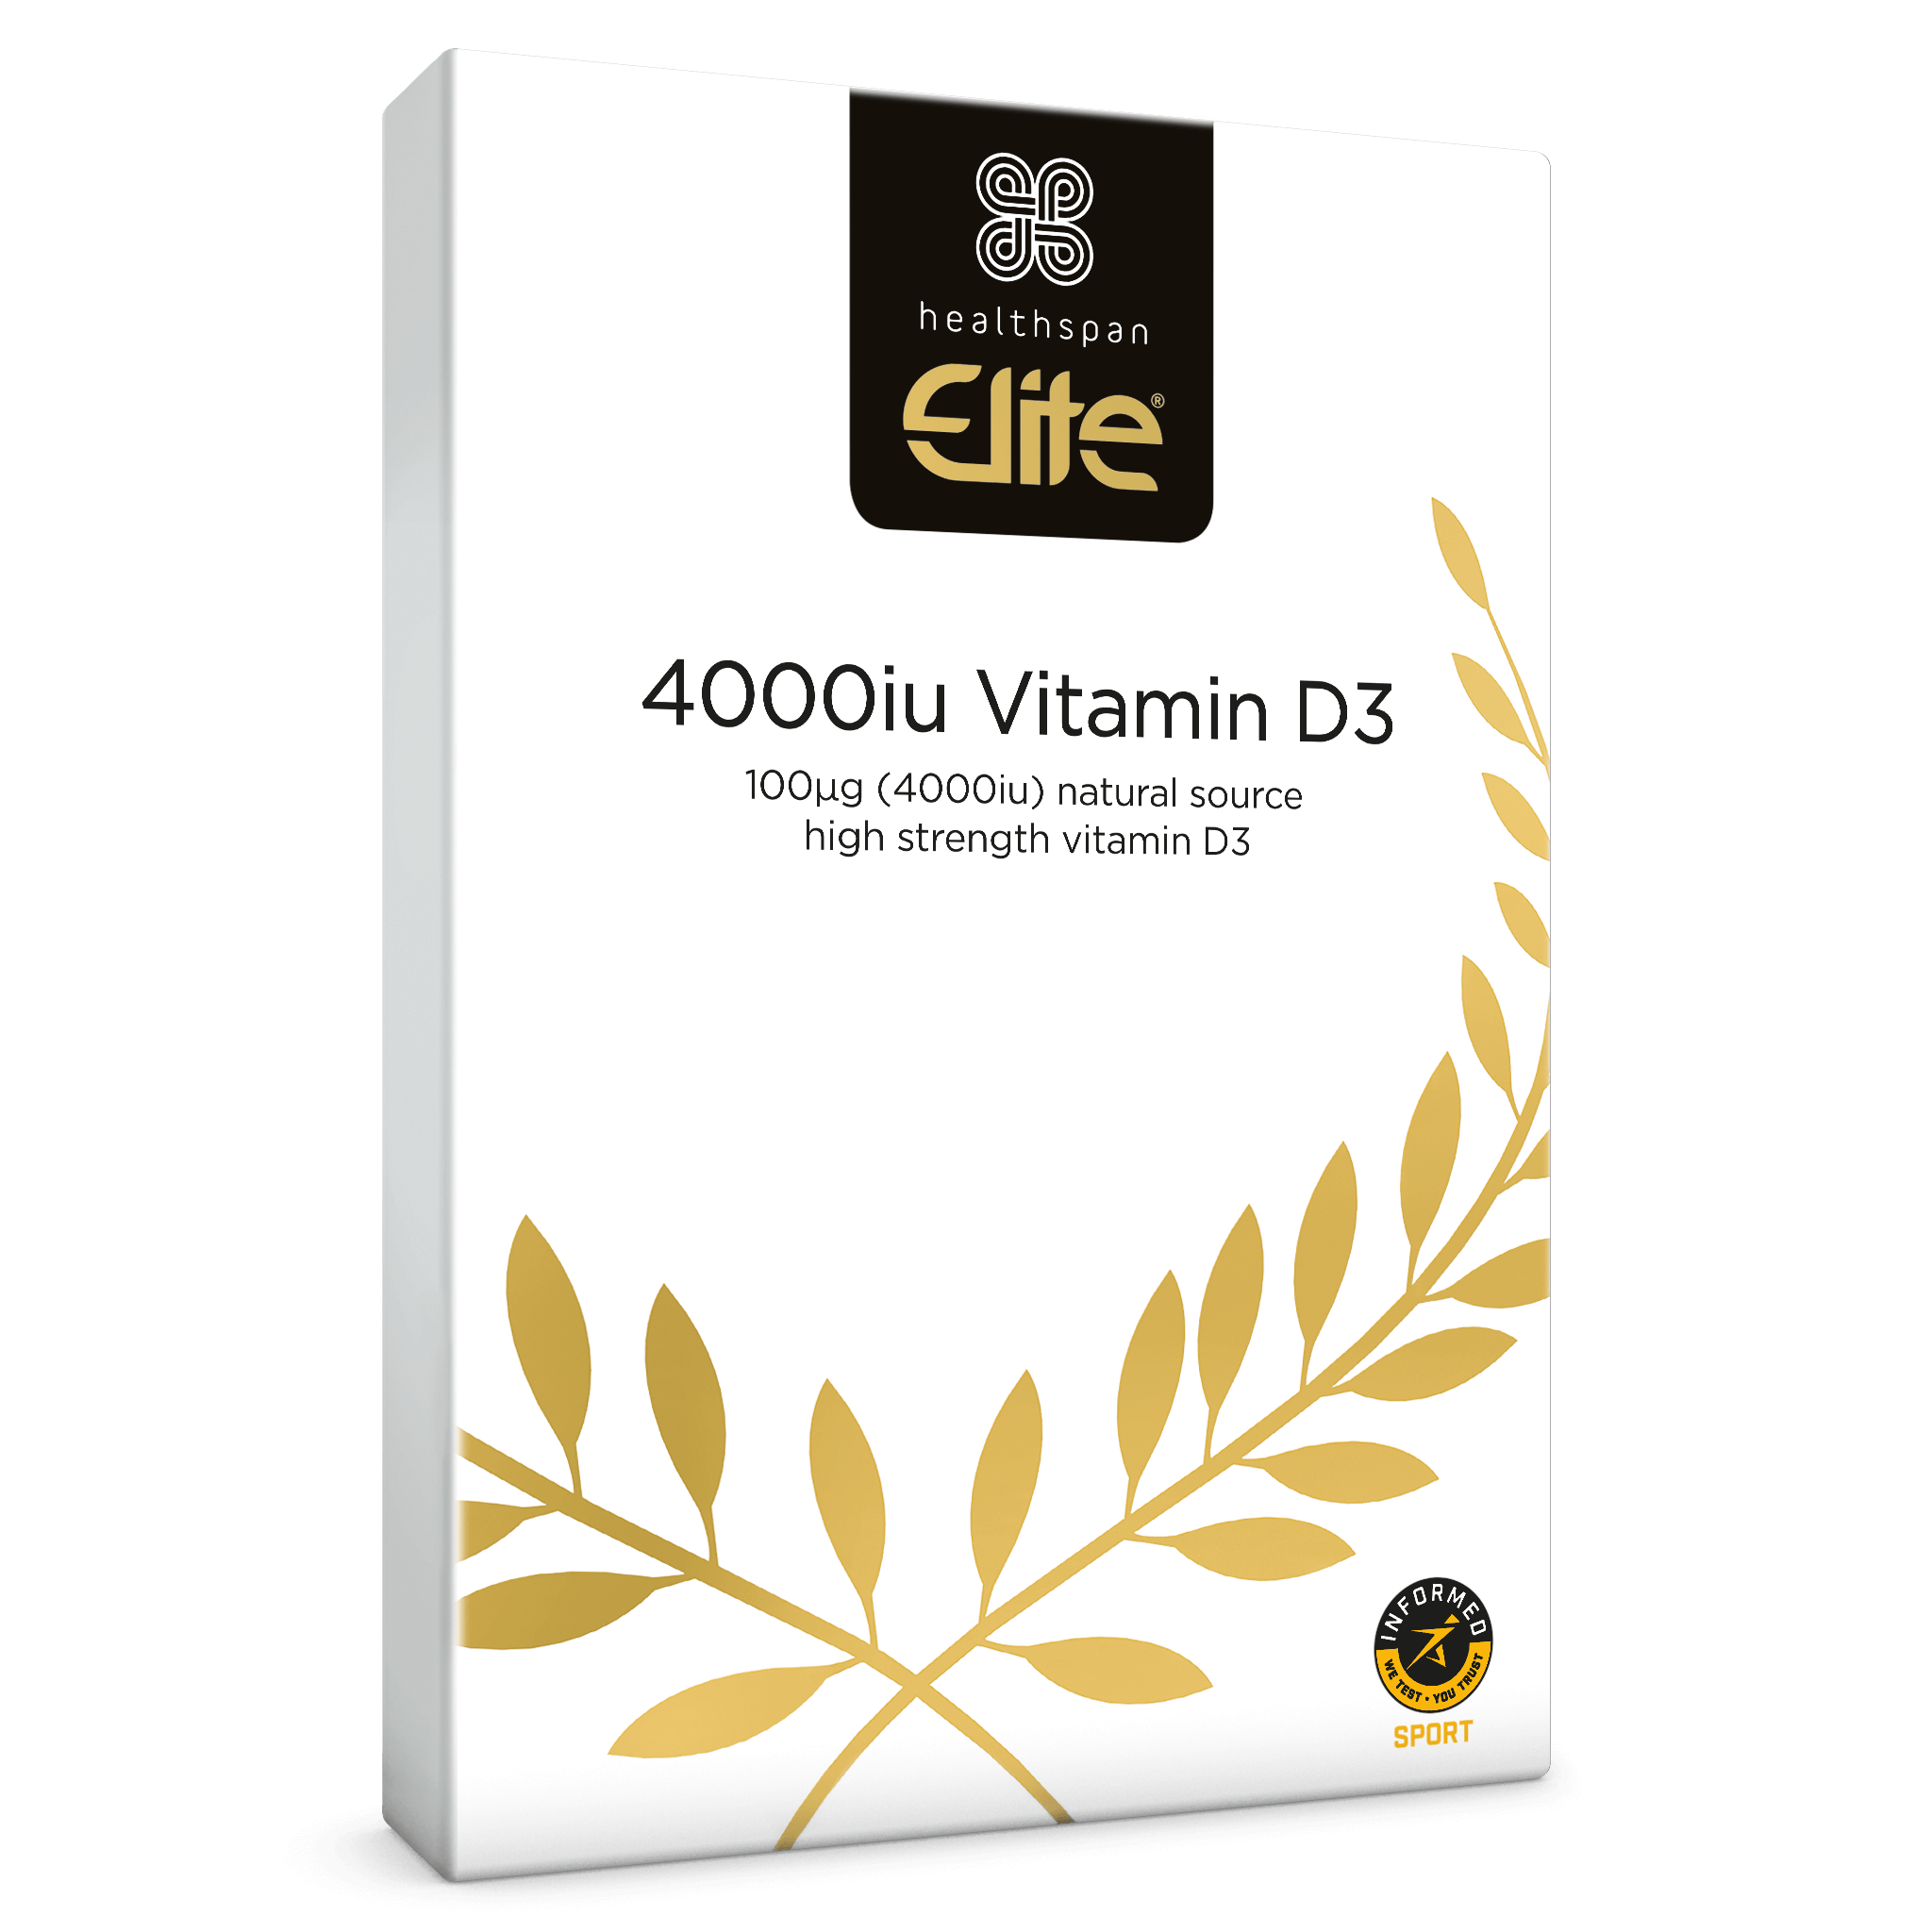 Elite Vitamin D3 4,000iu